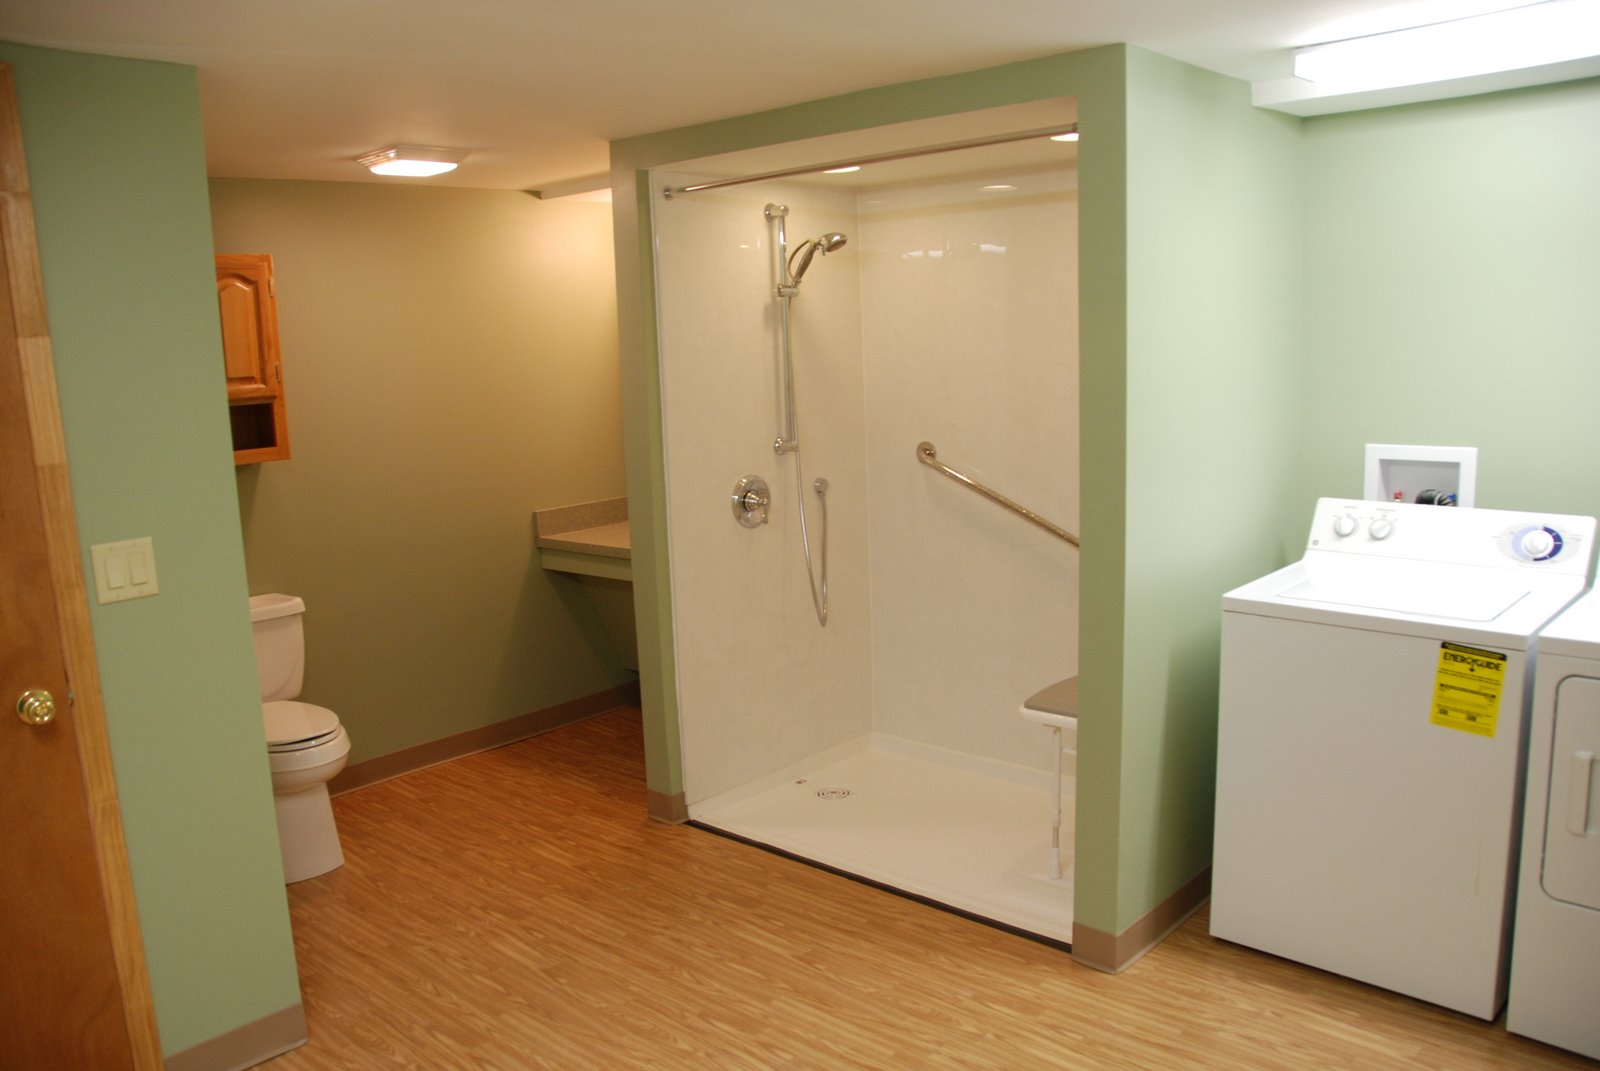 Neat Basement Bathroom Ideas With Showering Area Near Washing Machine